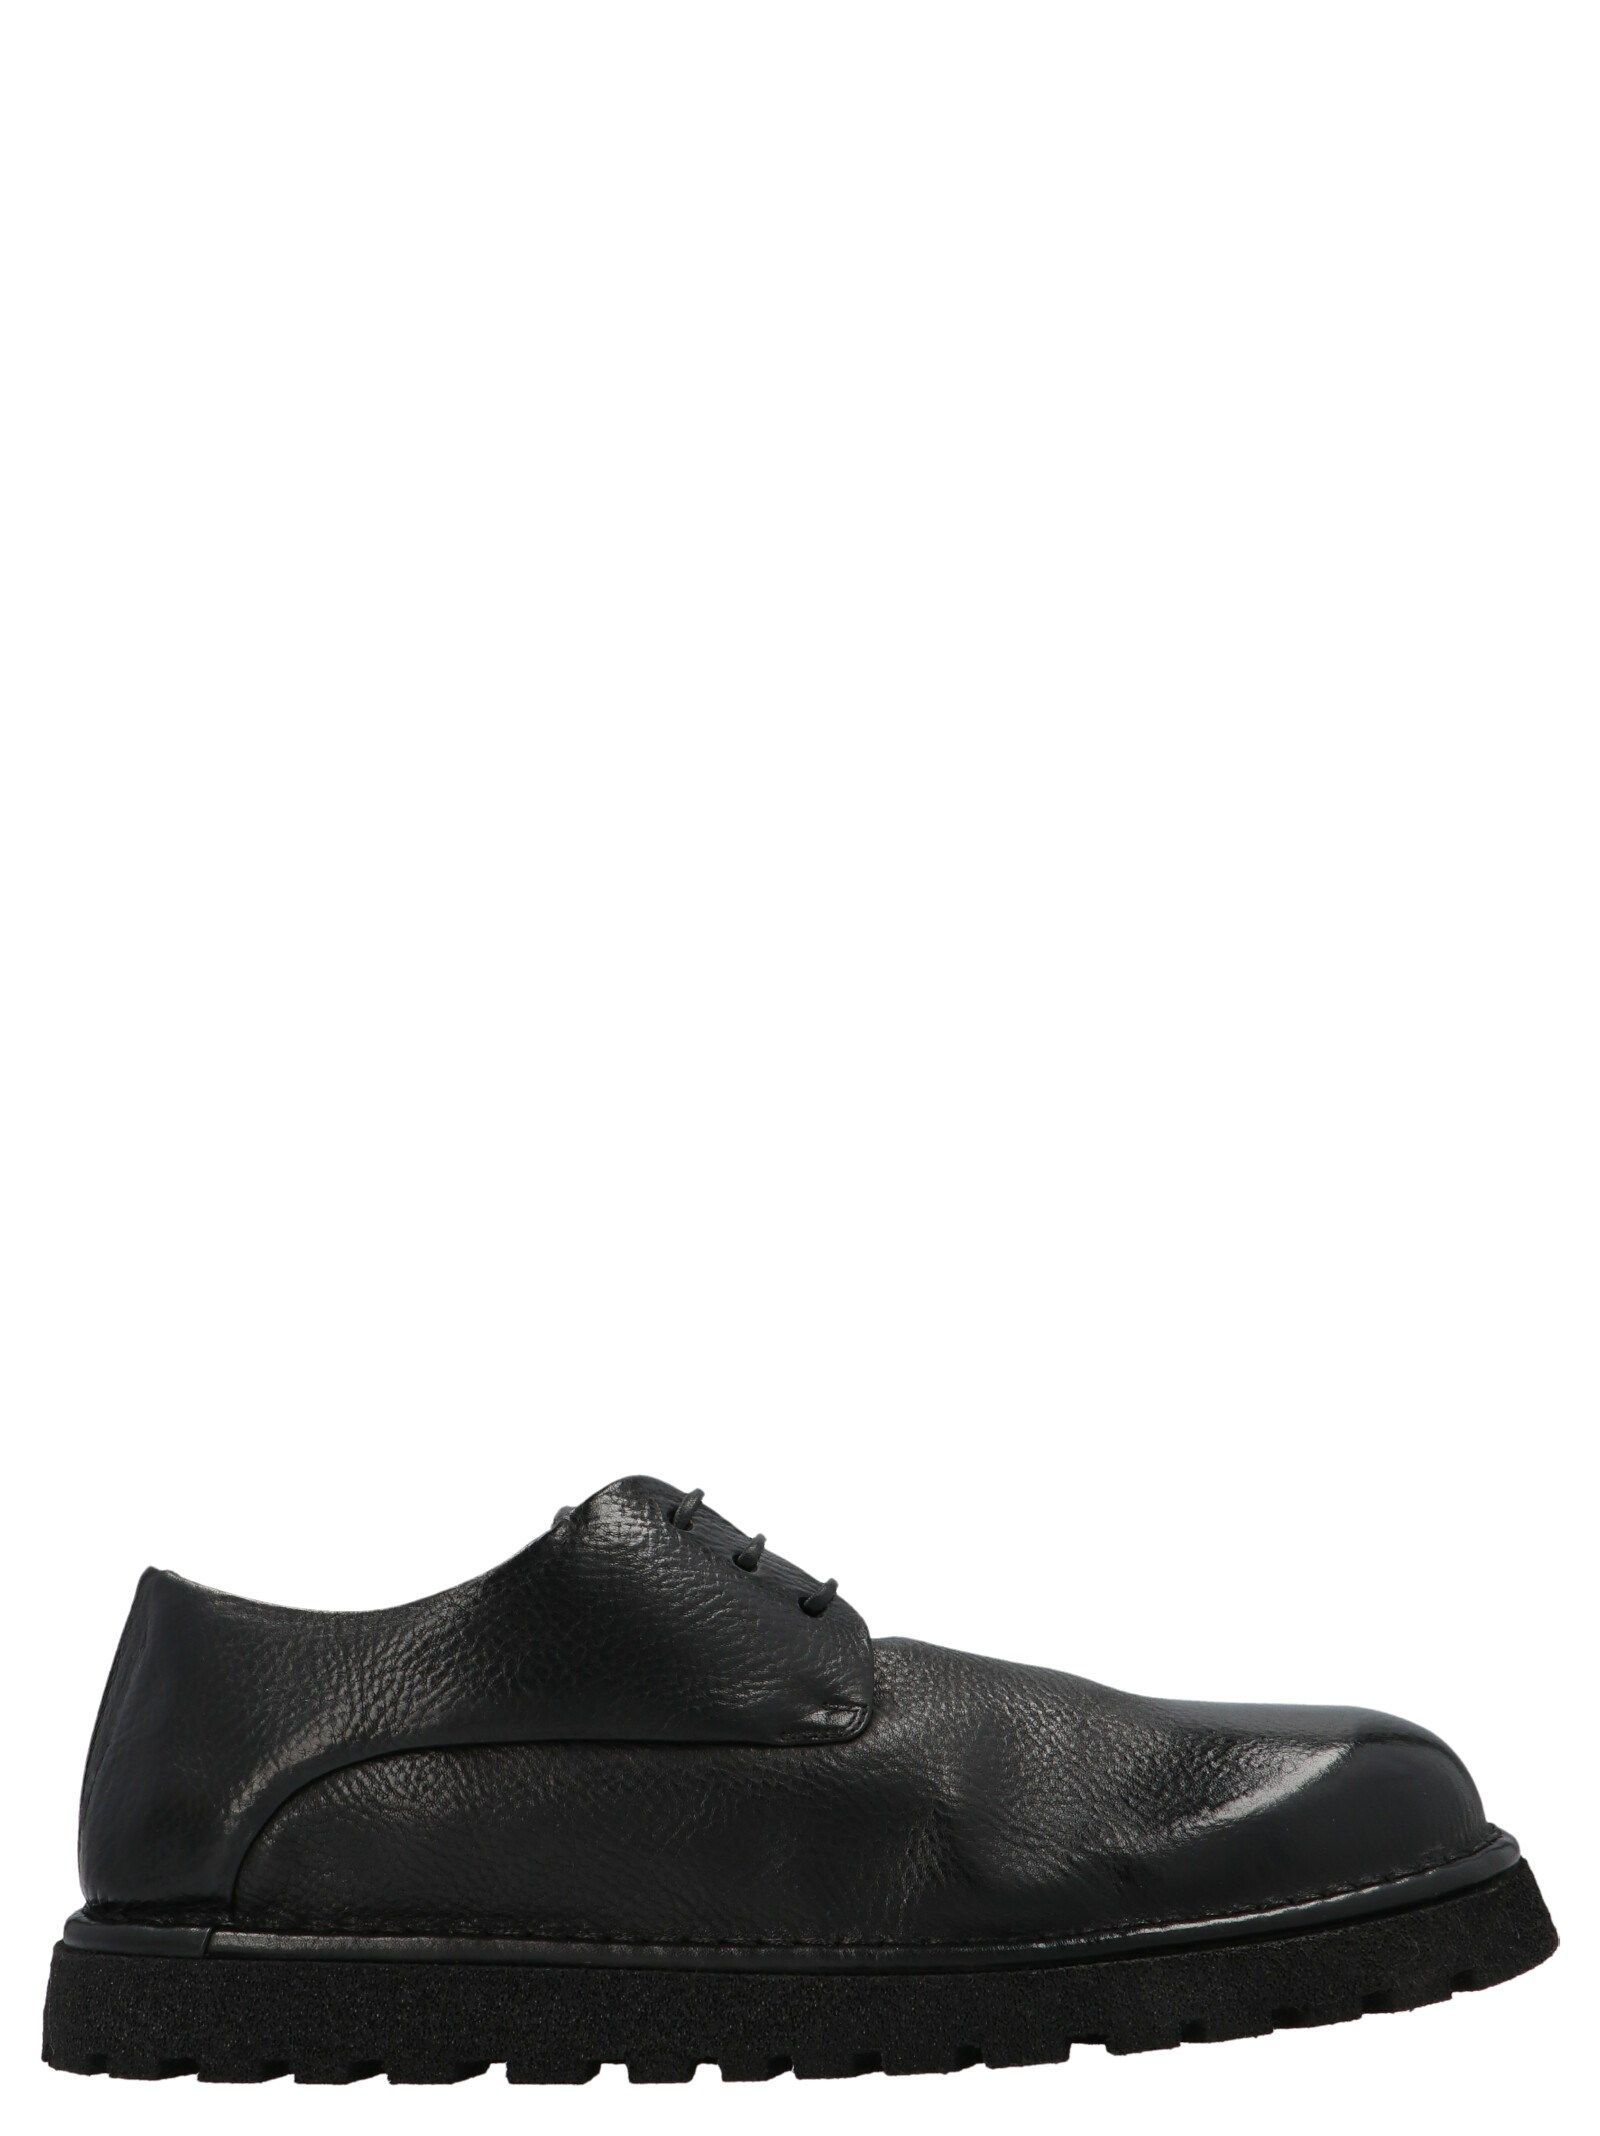 Marsèll MARSELL MEN'S MMG353P666 BLACK OTHER MATERIALS LACE-UP SHOES